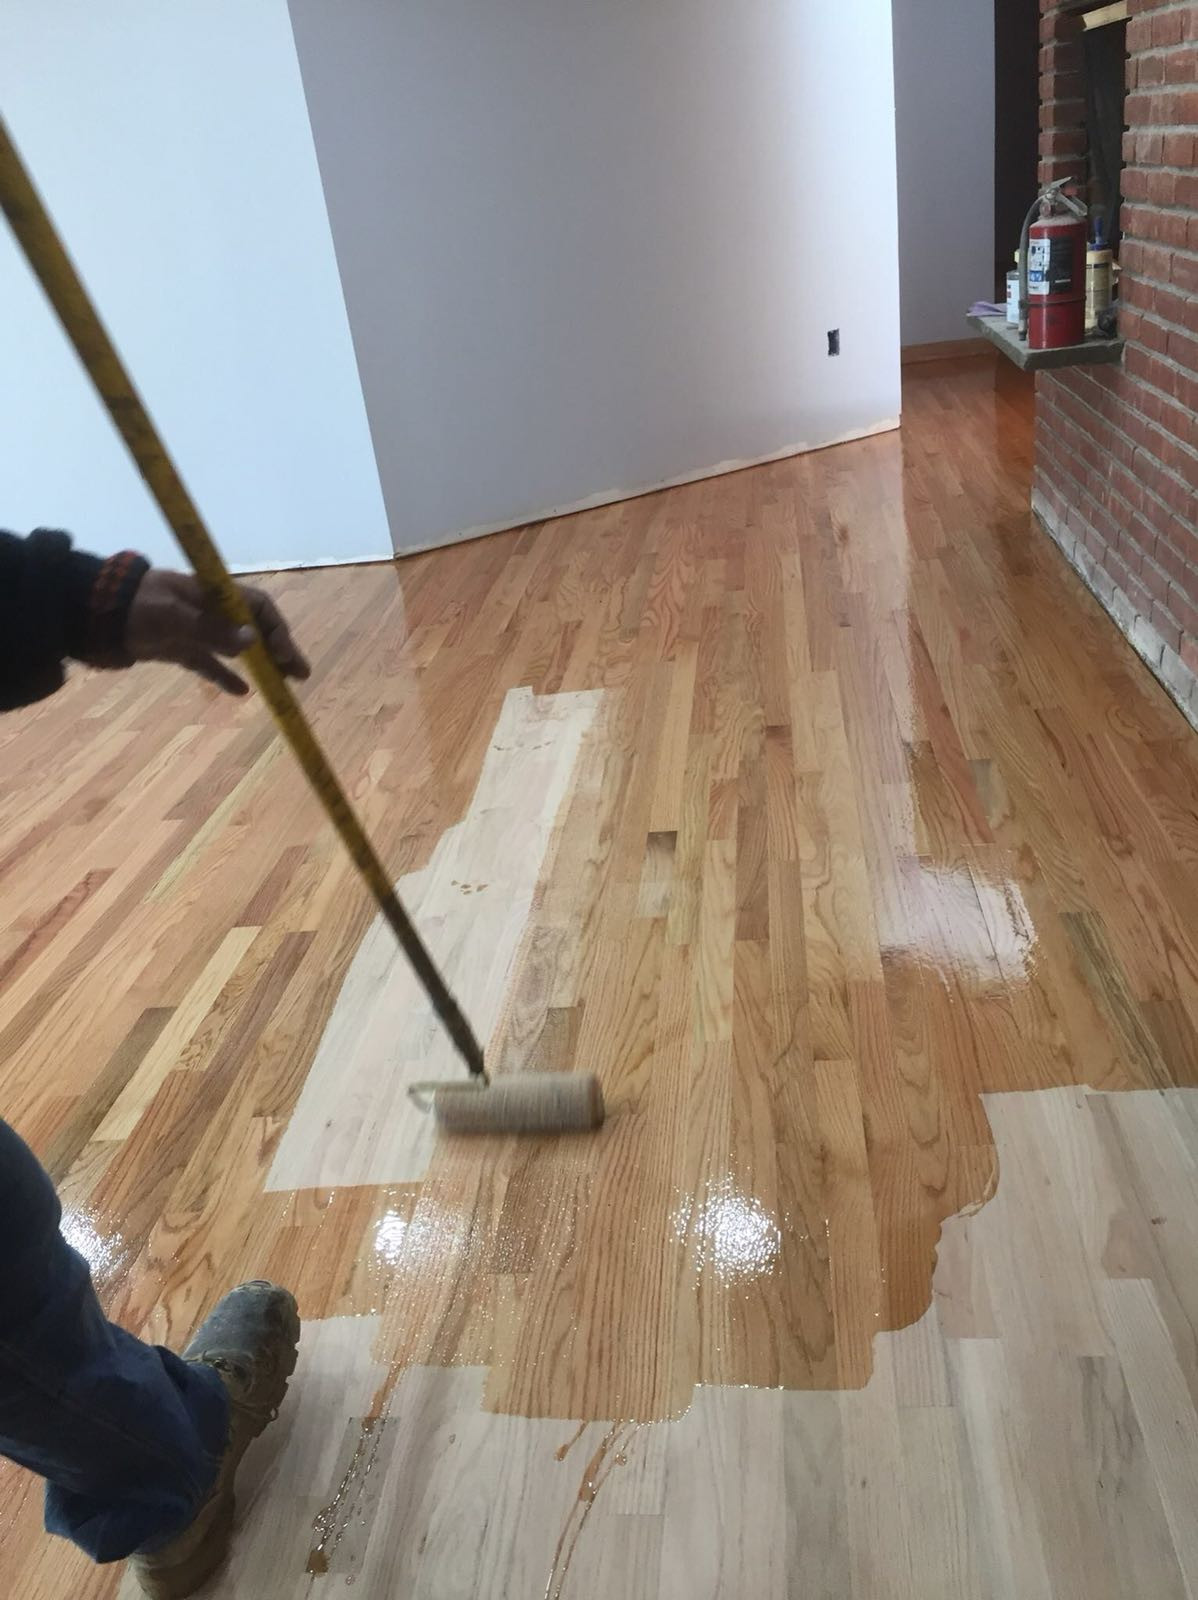 Hardwood Floors Fairfield Ct Of Gallery Deros Painting Hardwood Floors Connecticut Throughout Hardwood Floor Repair and Refinising